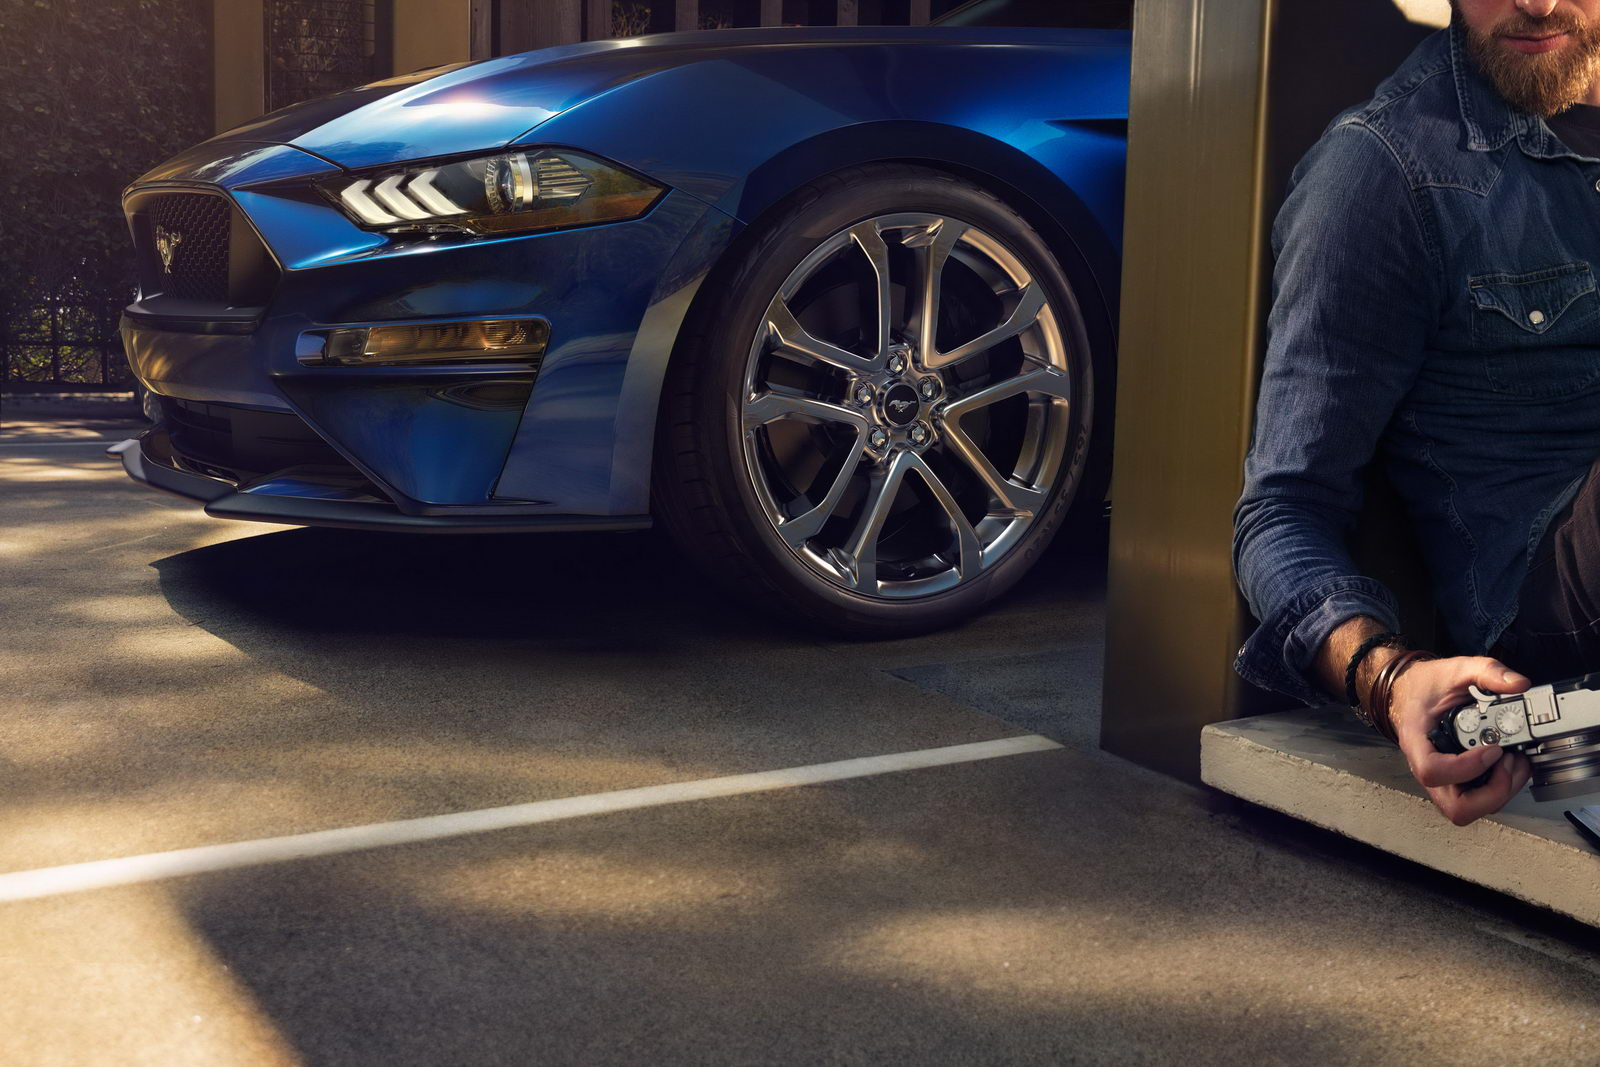 Ford Mustang GT facelift 2018 28